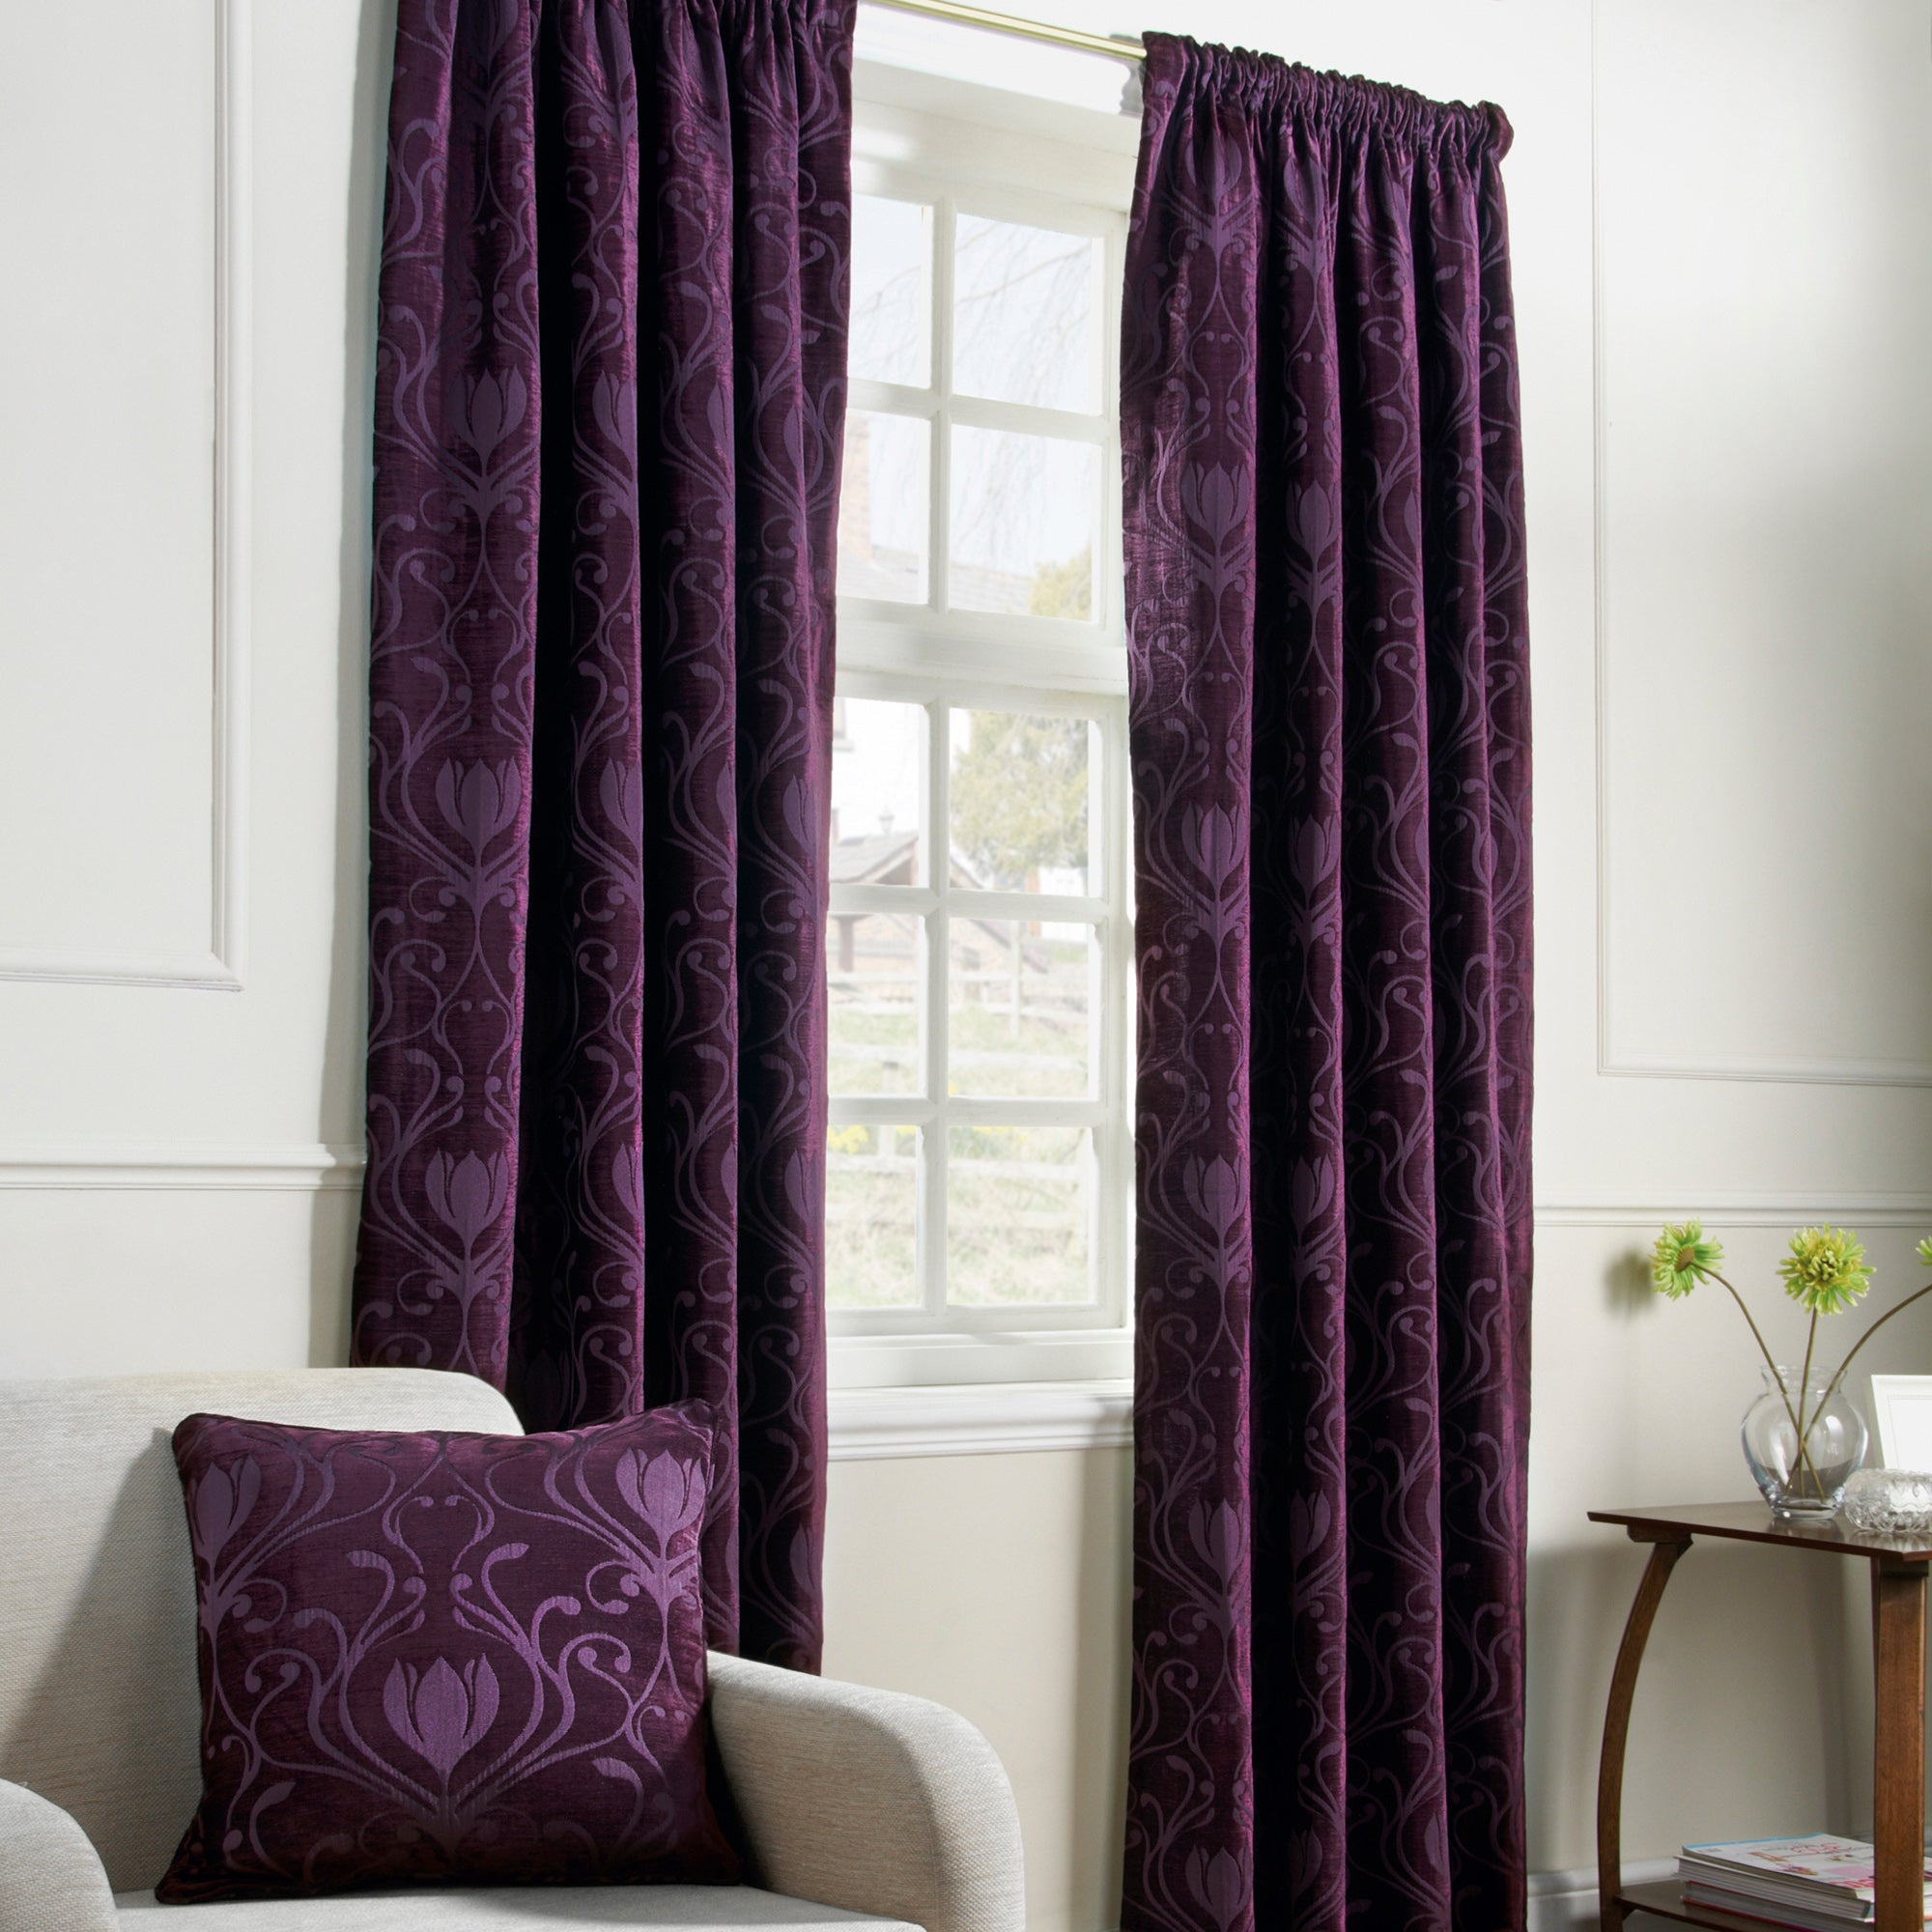 Aubergine Deco Lined Pencil Pleat Curtains